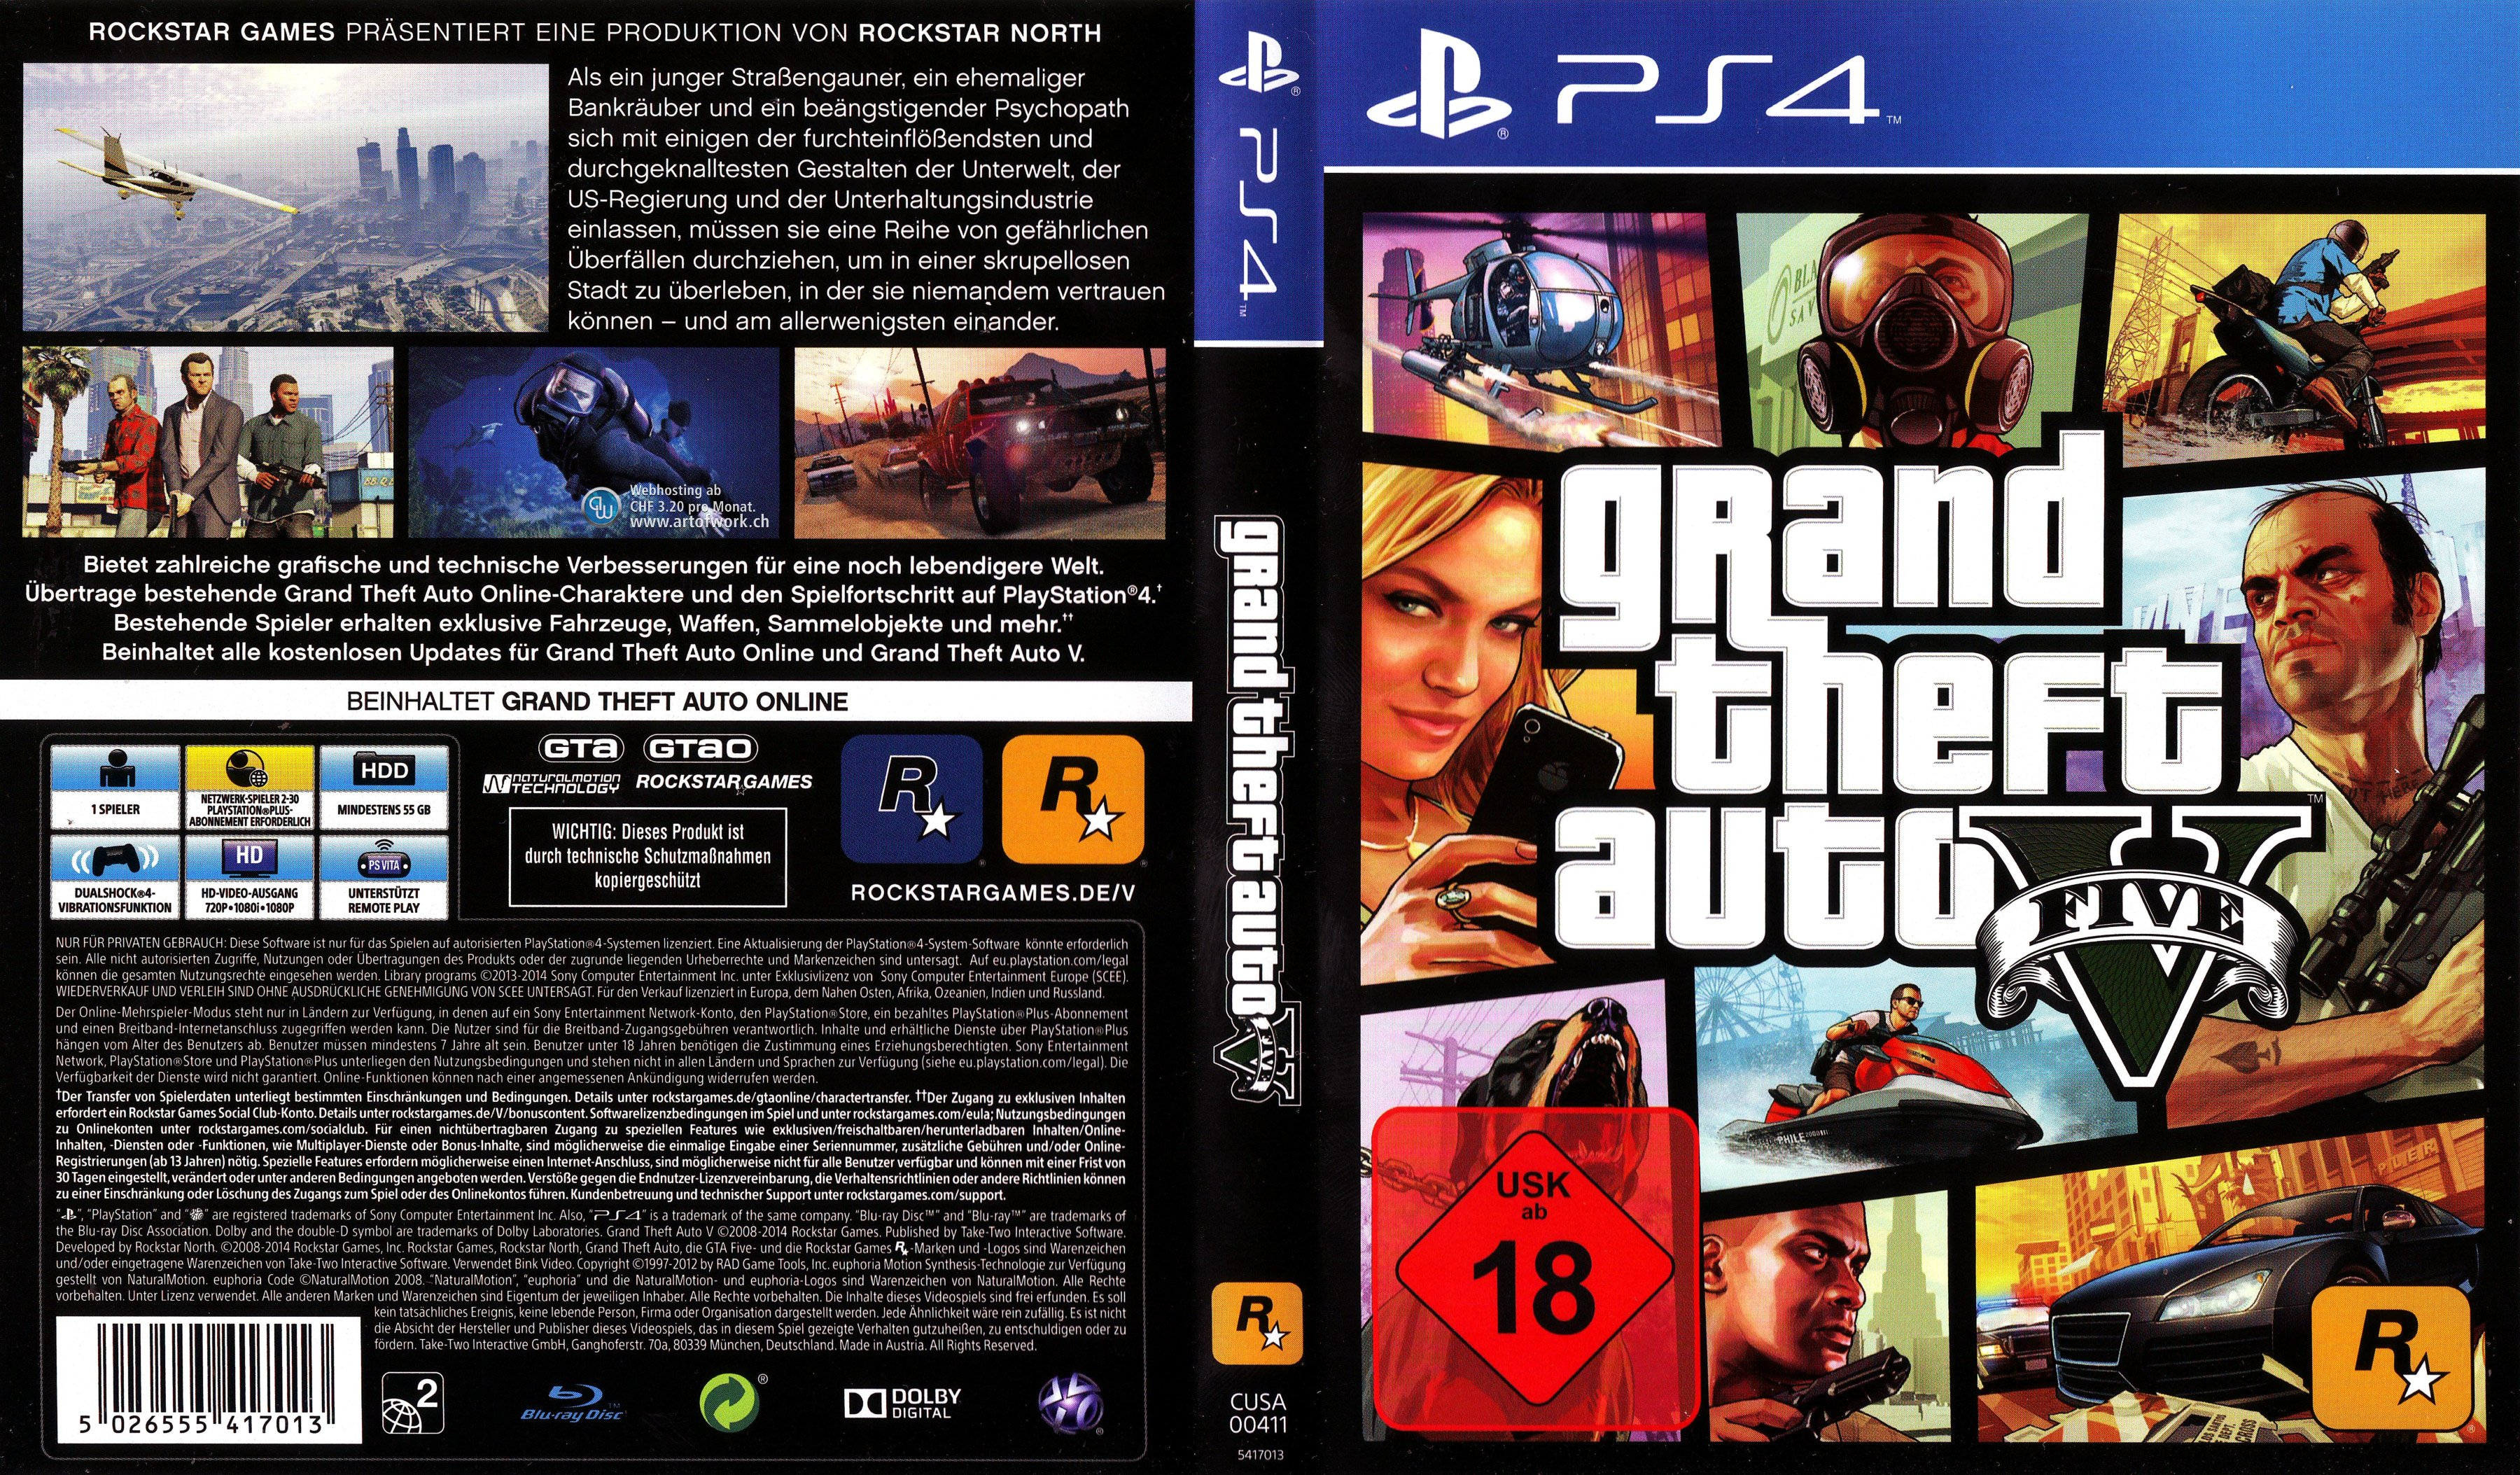 Grand Theft Auto V Rockstar Games PlayStation 4